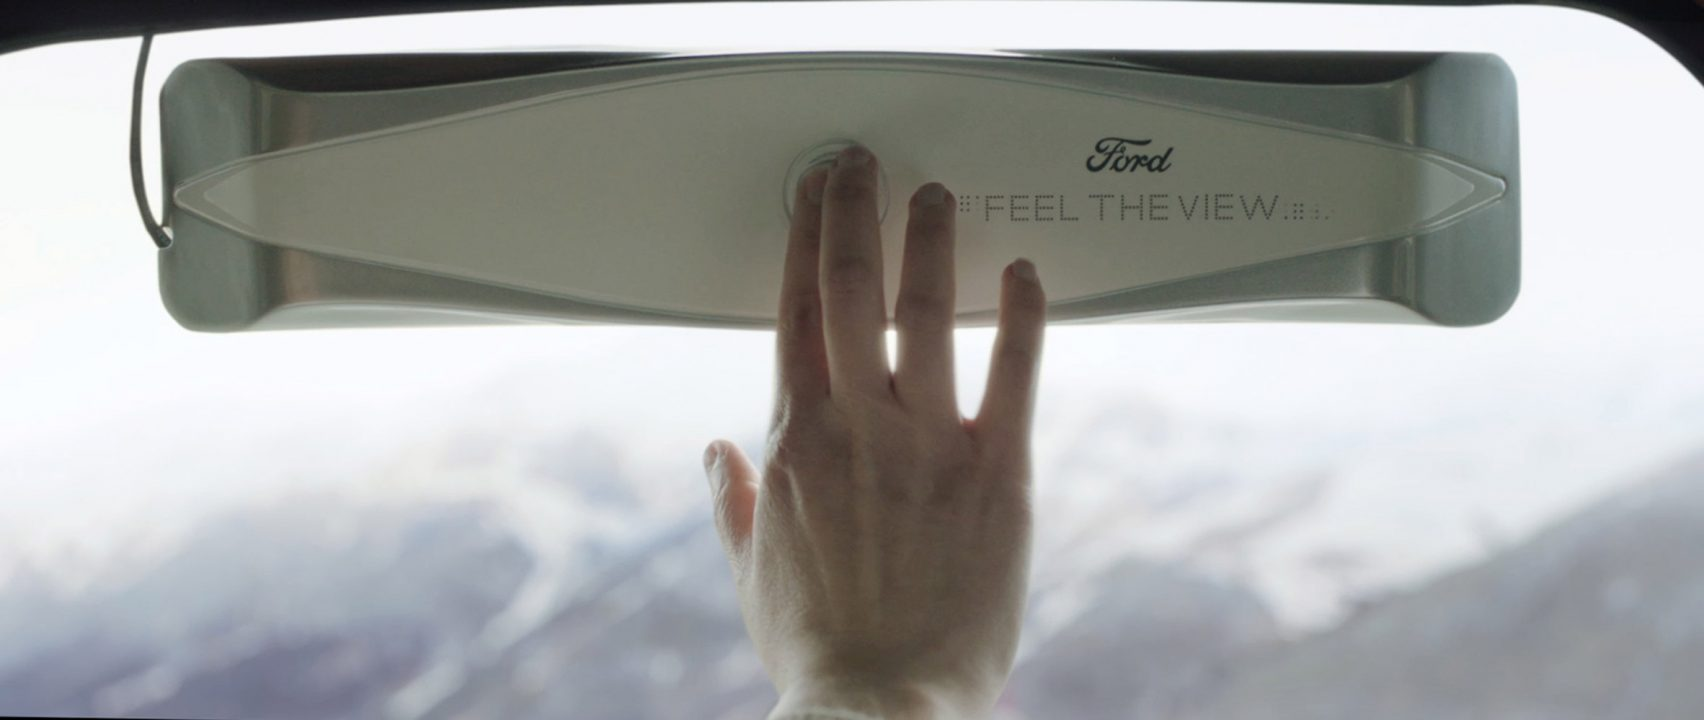 ford-feel-the-view-technology_igs magazine-2